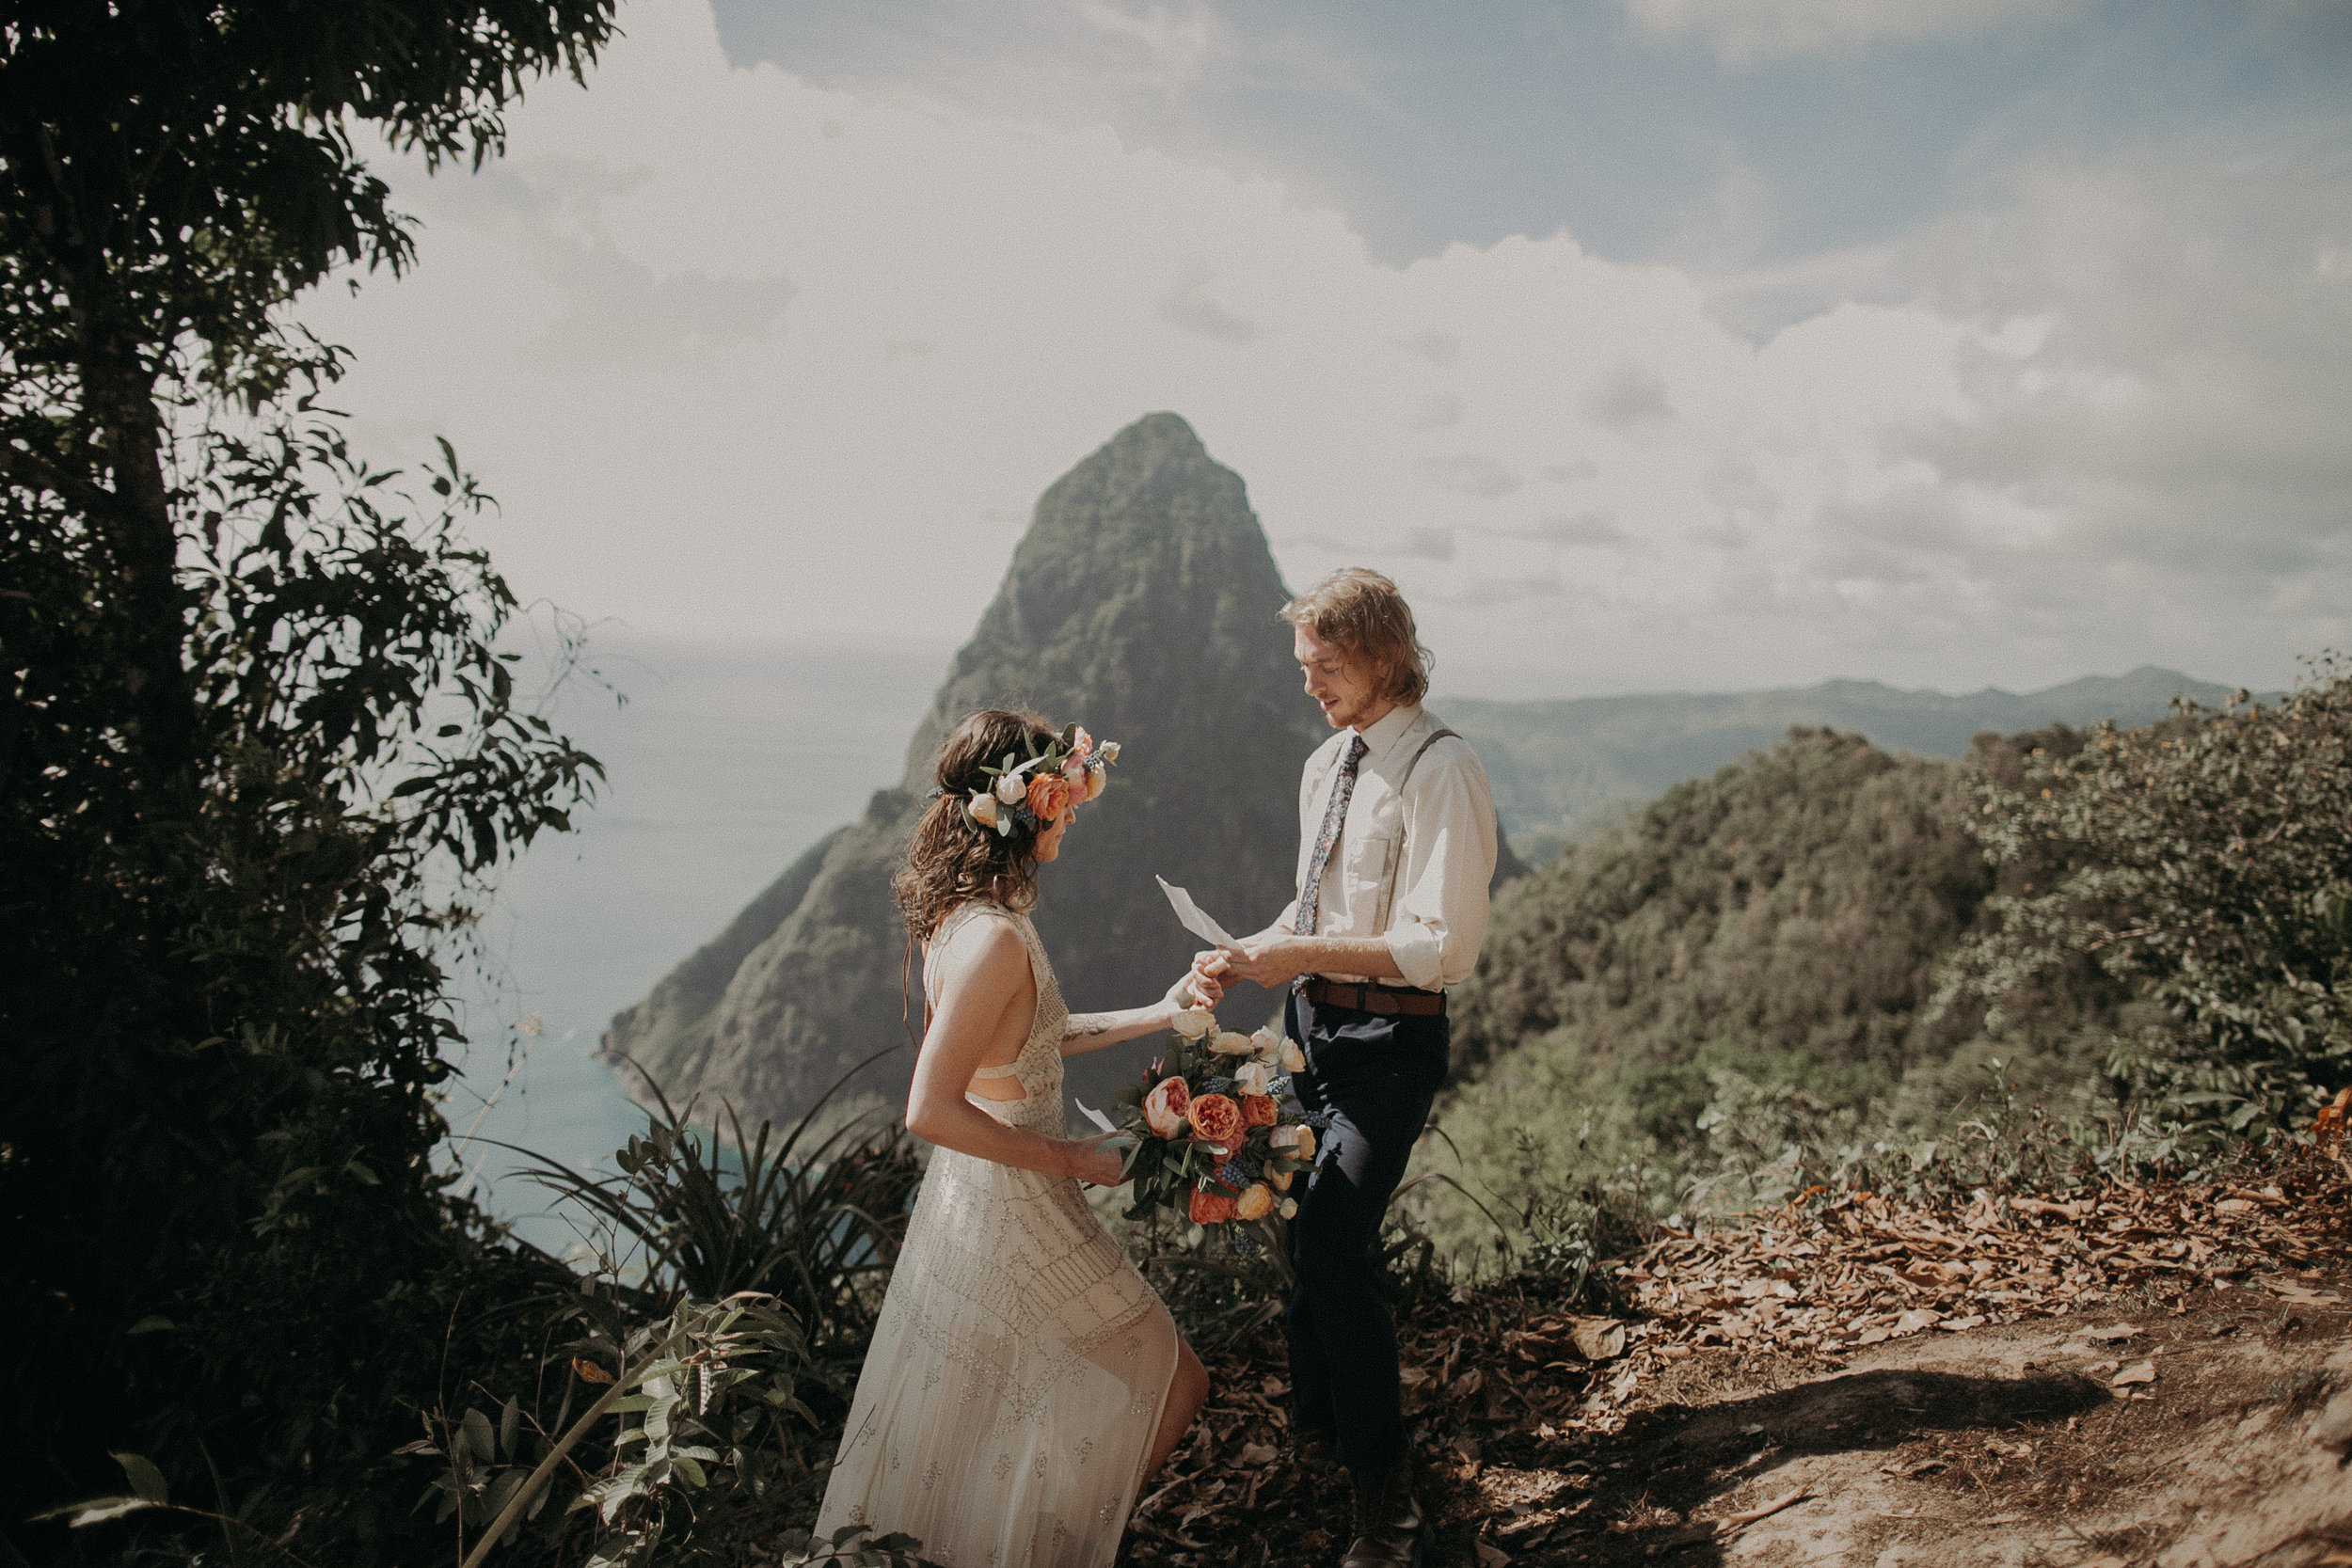 Laura & Josh - St. LuciaOk this elopement takes the cakkkke. Laura and Josh came all the way from Tennessee to elope and it involved hiking to some epic views to say their vows, skateboard rides, and ending with a jump in the pool.